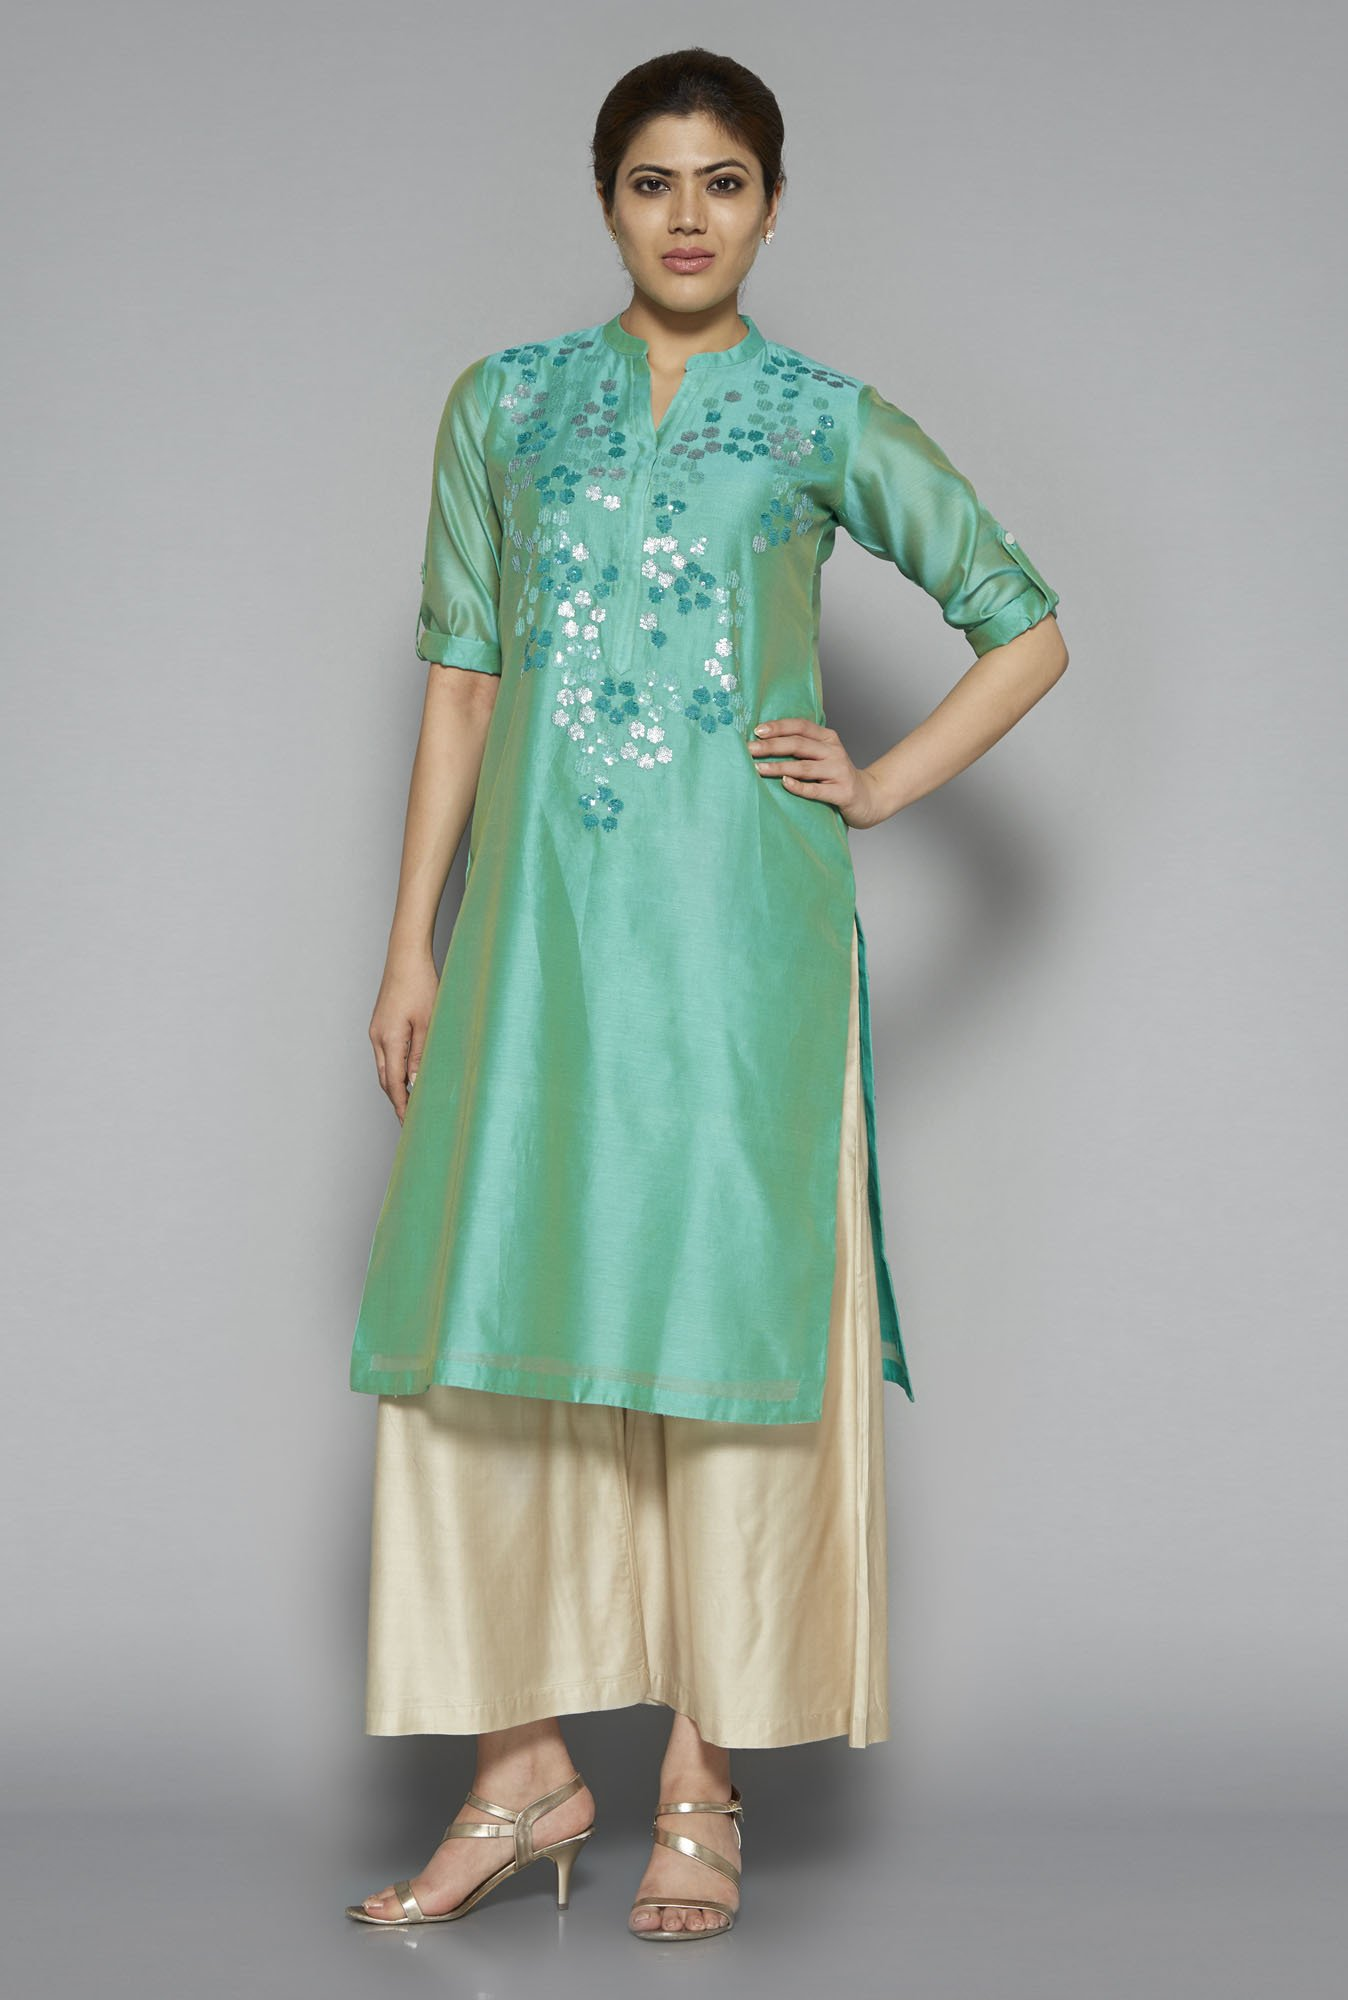 Women's Clothing | Buy Womens Fashion Clothing Online In India At ...